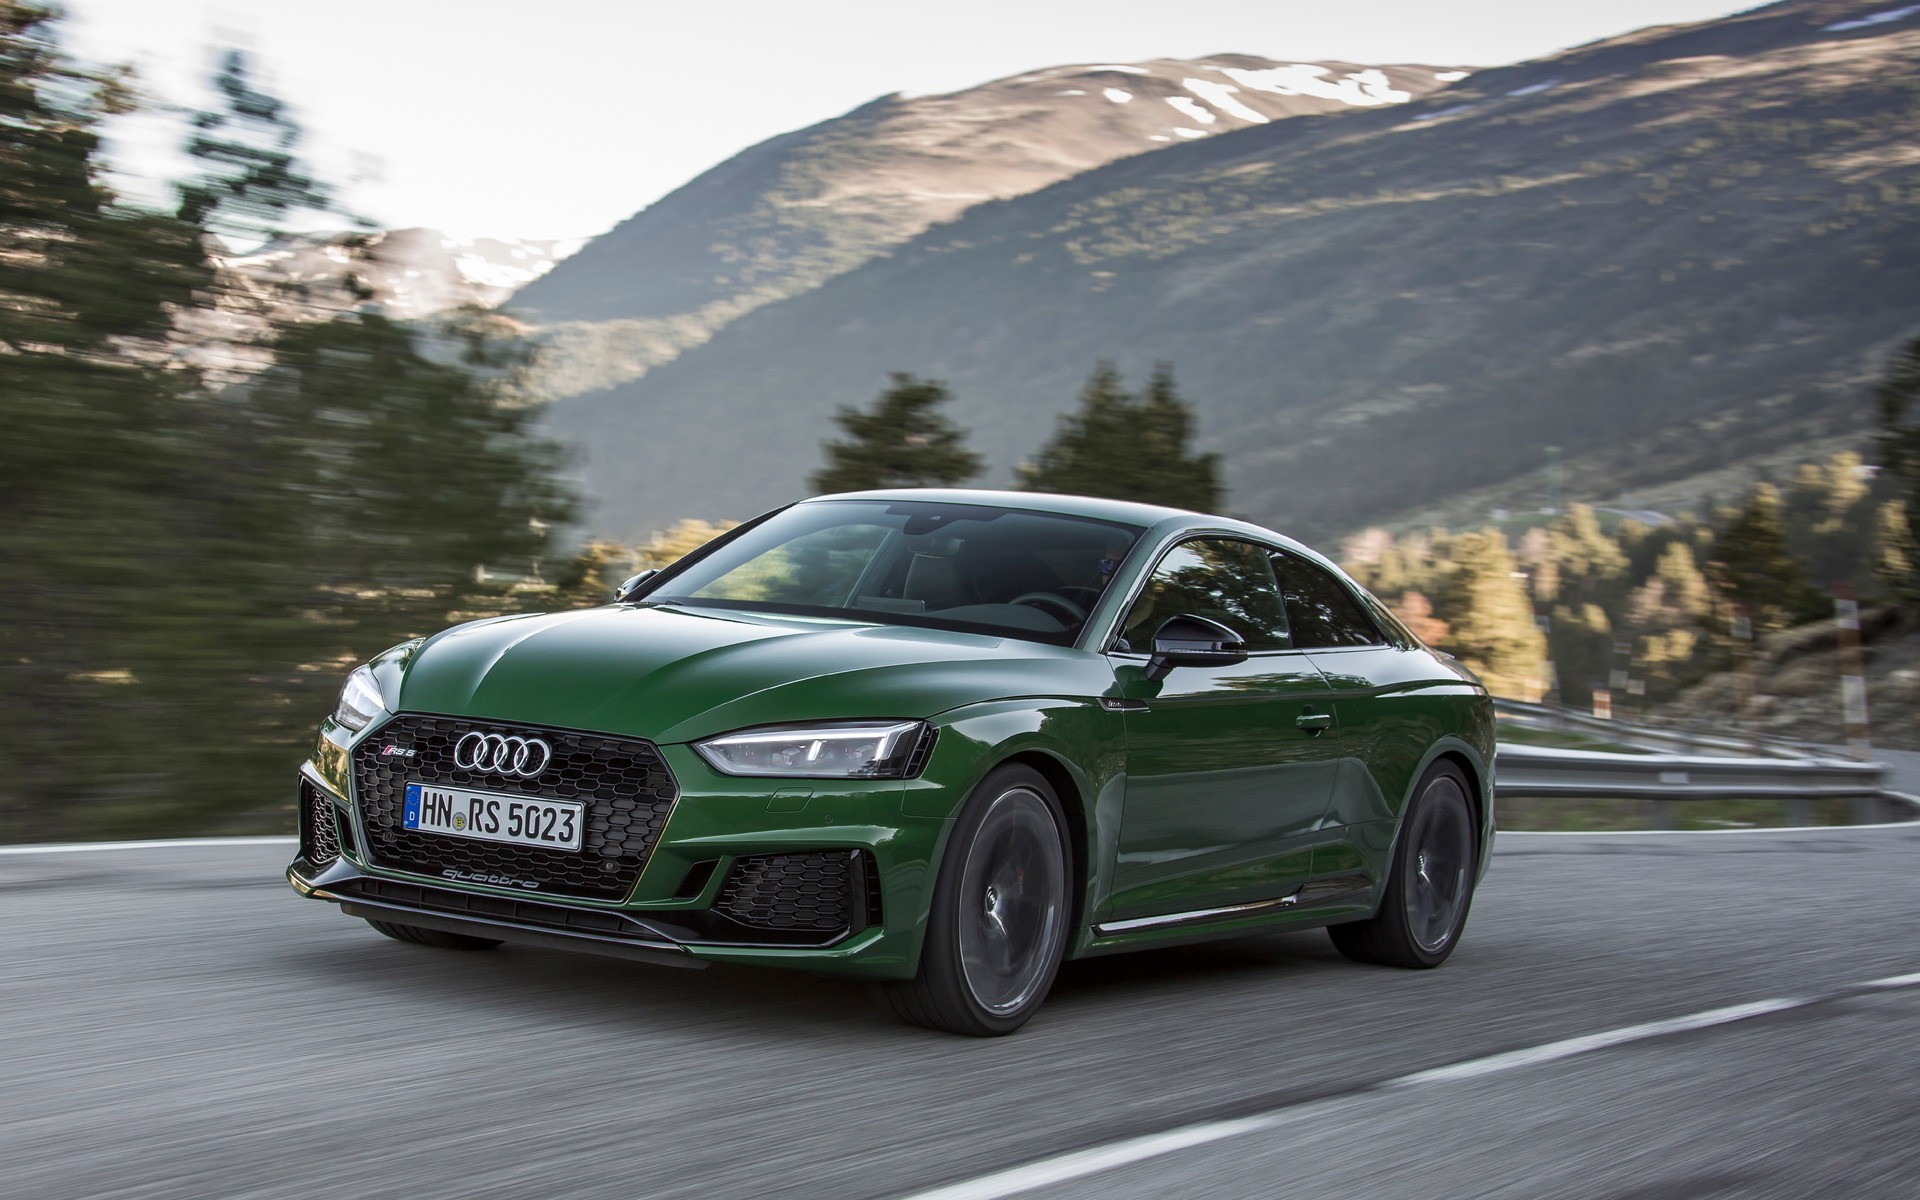 Captivating Test Drives · 2018 Audi RS 5: Two Less Cylinders, Two More Turbos